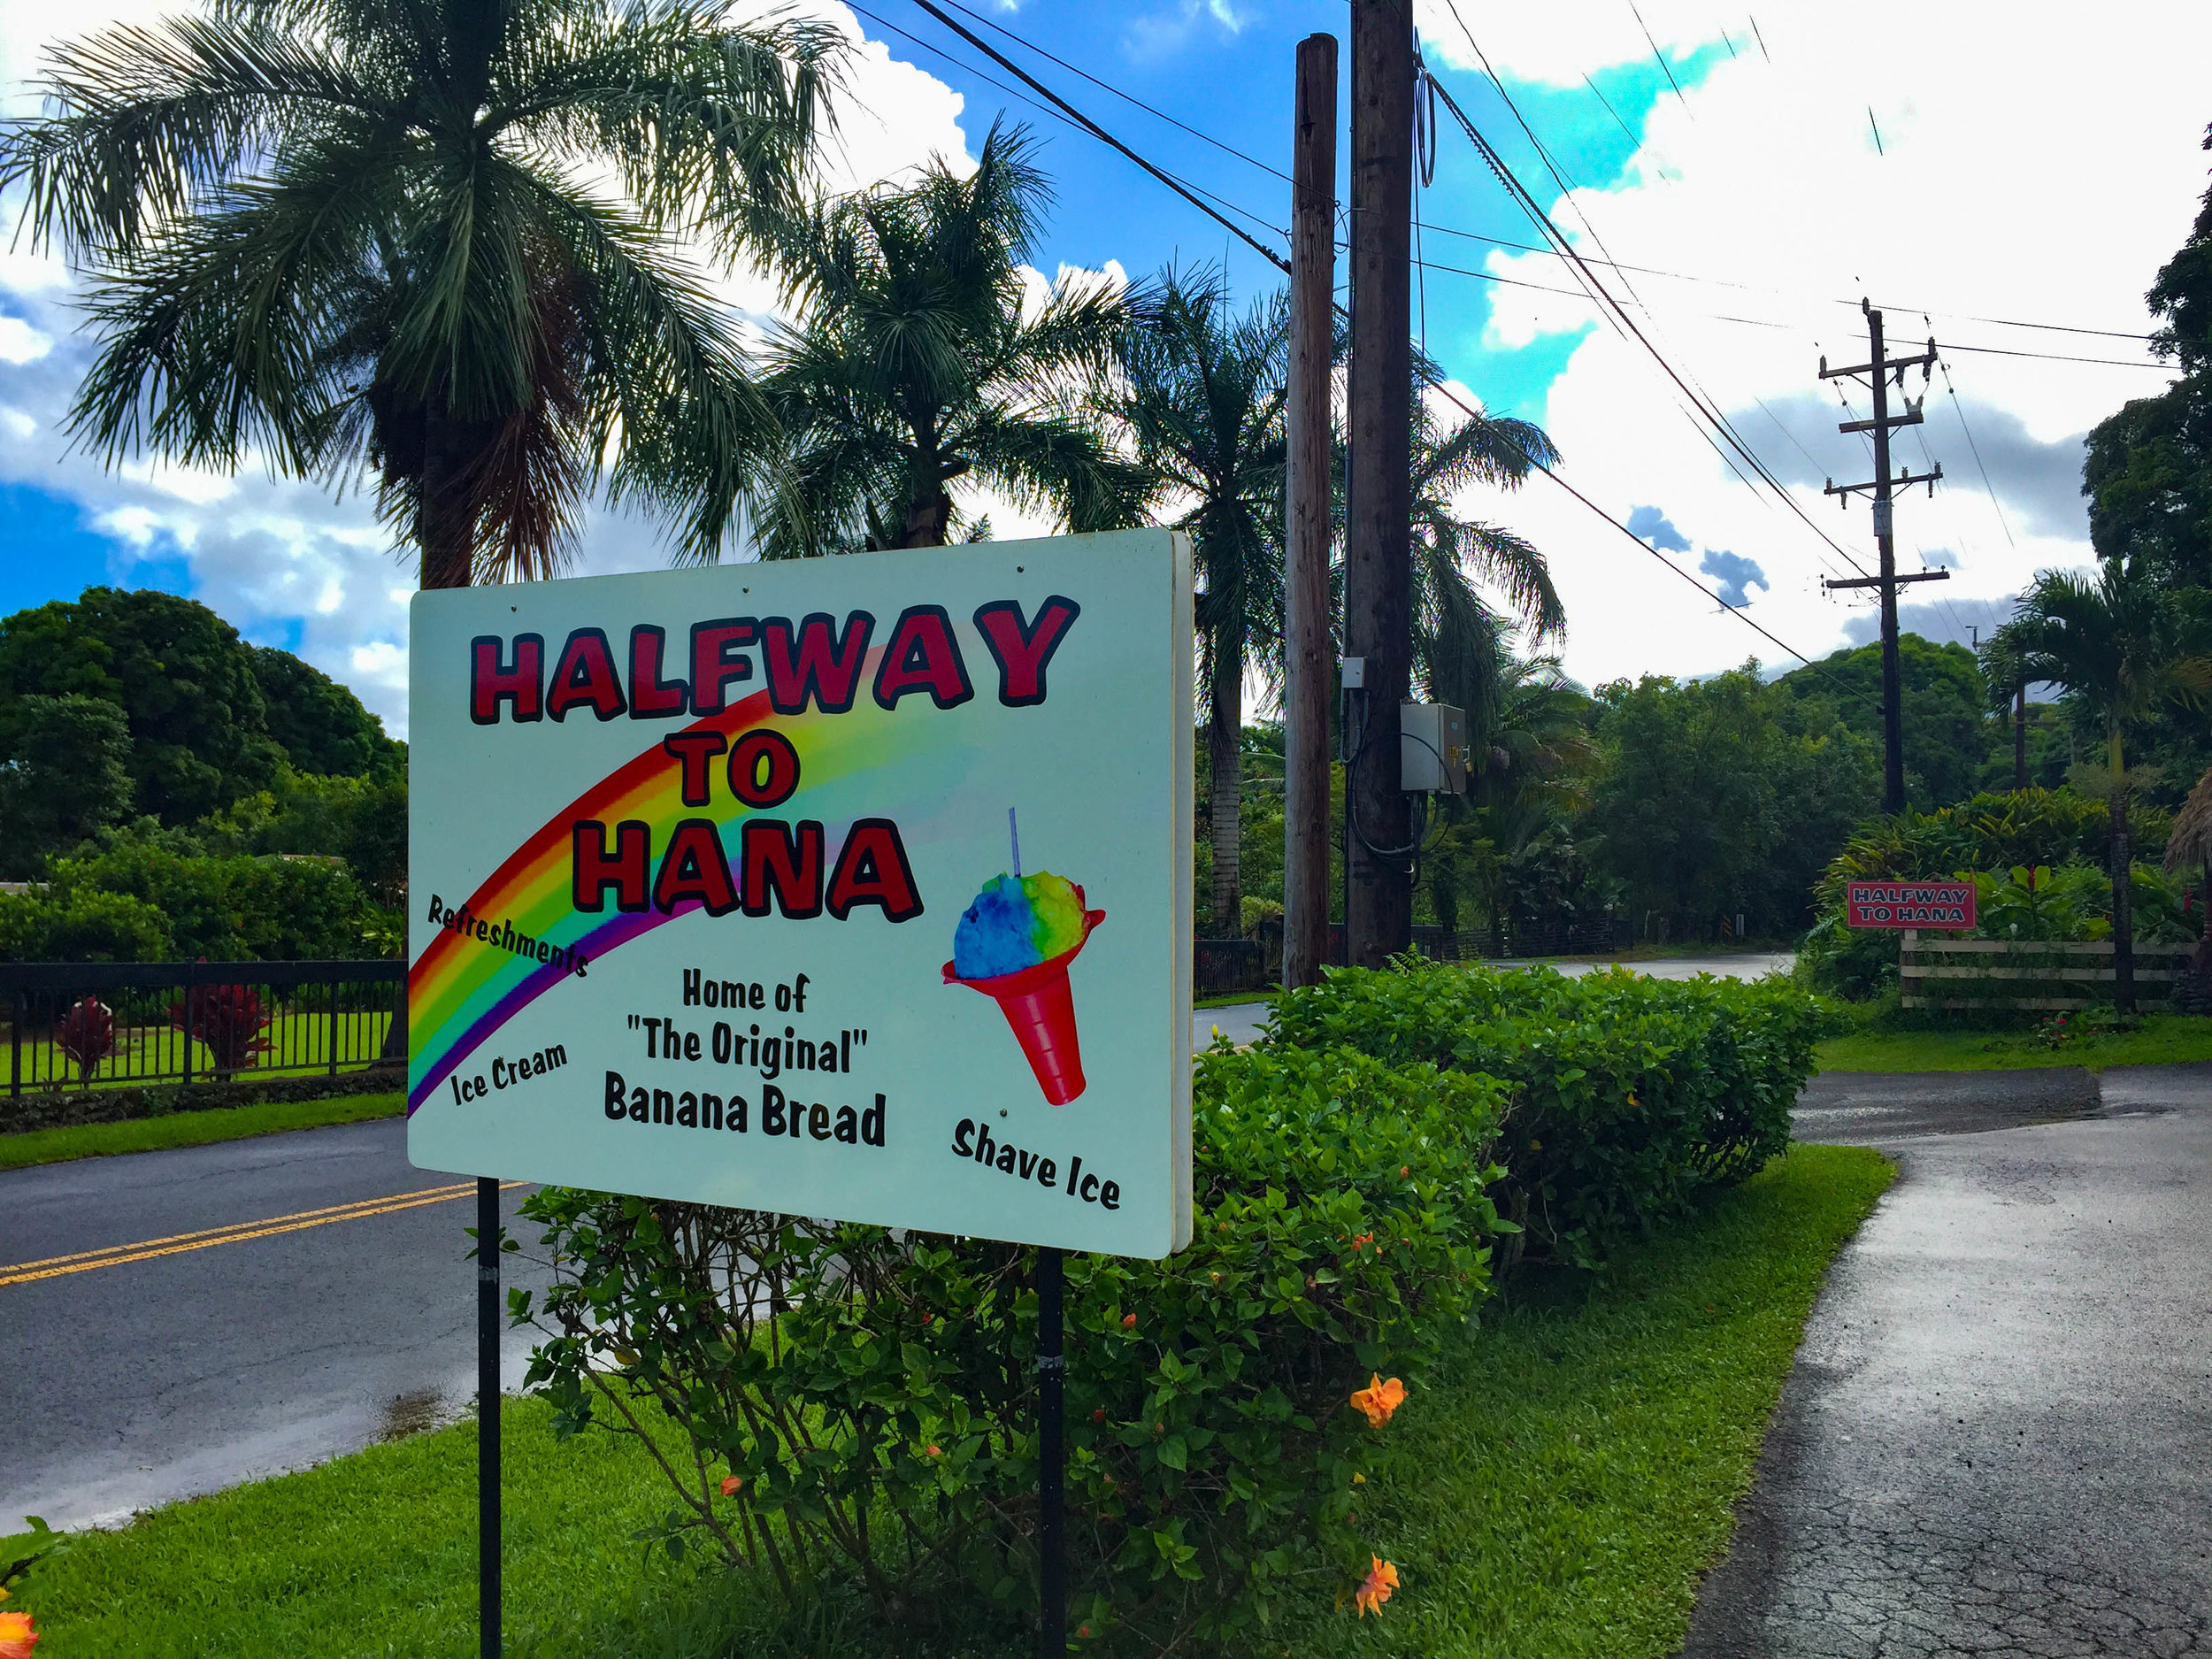 Halfway to Hana - Banana Bread and coffee stand